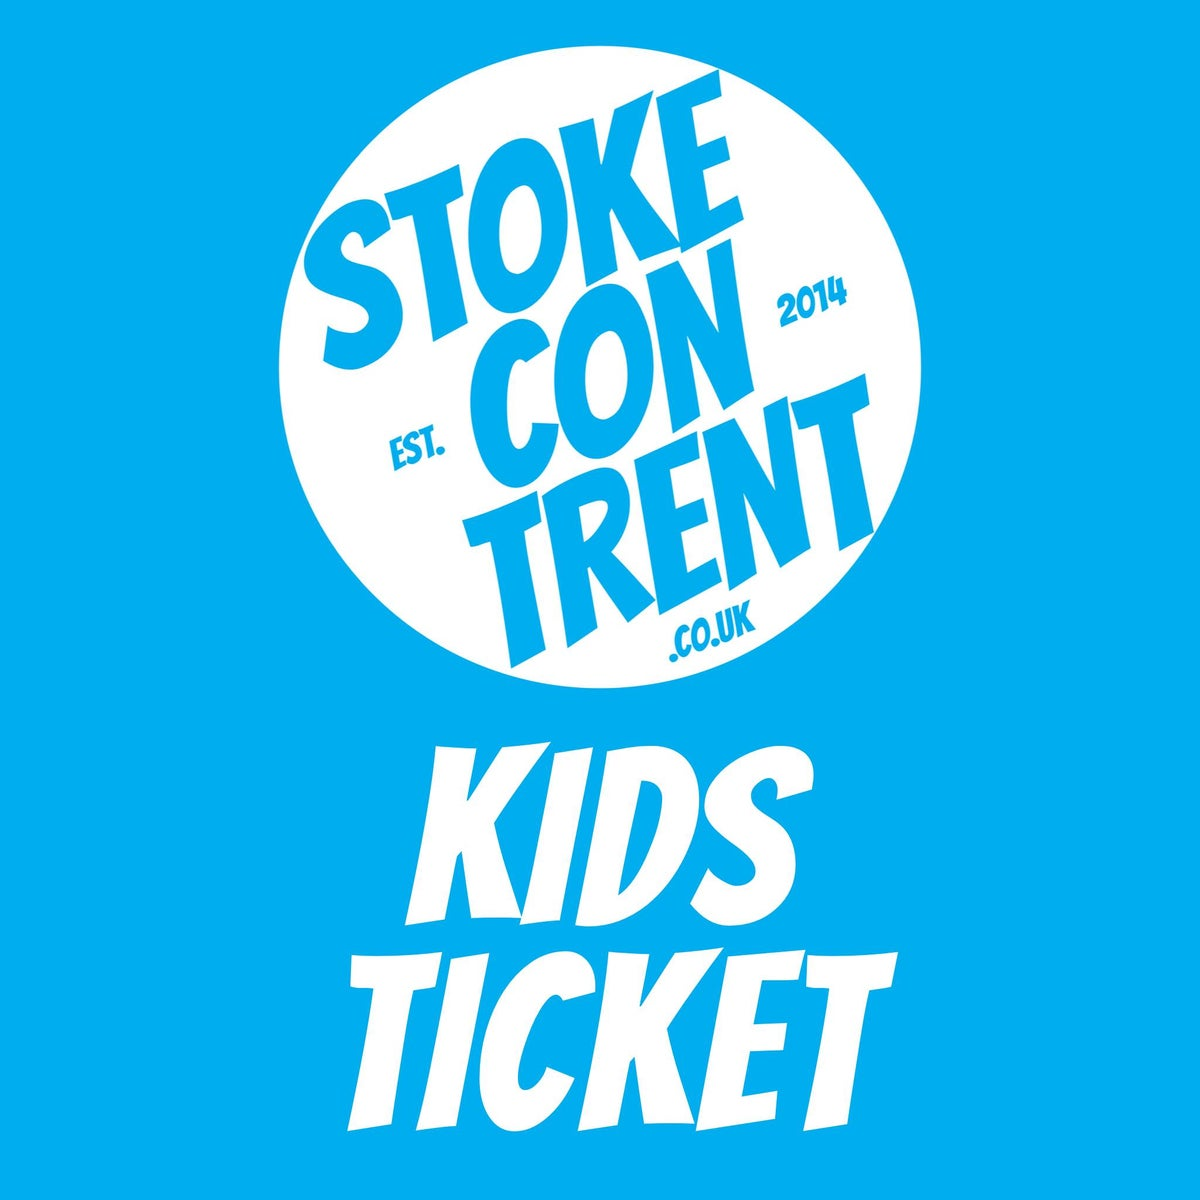 Image of Kids Ticket for Stoke CON Trent 11